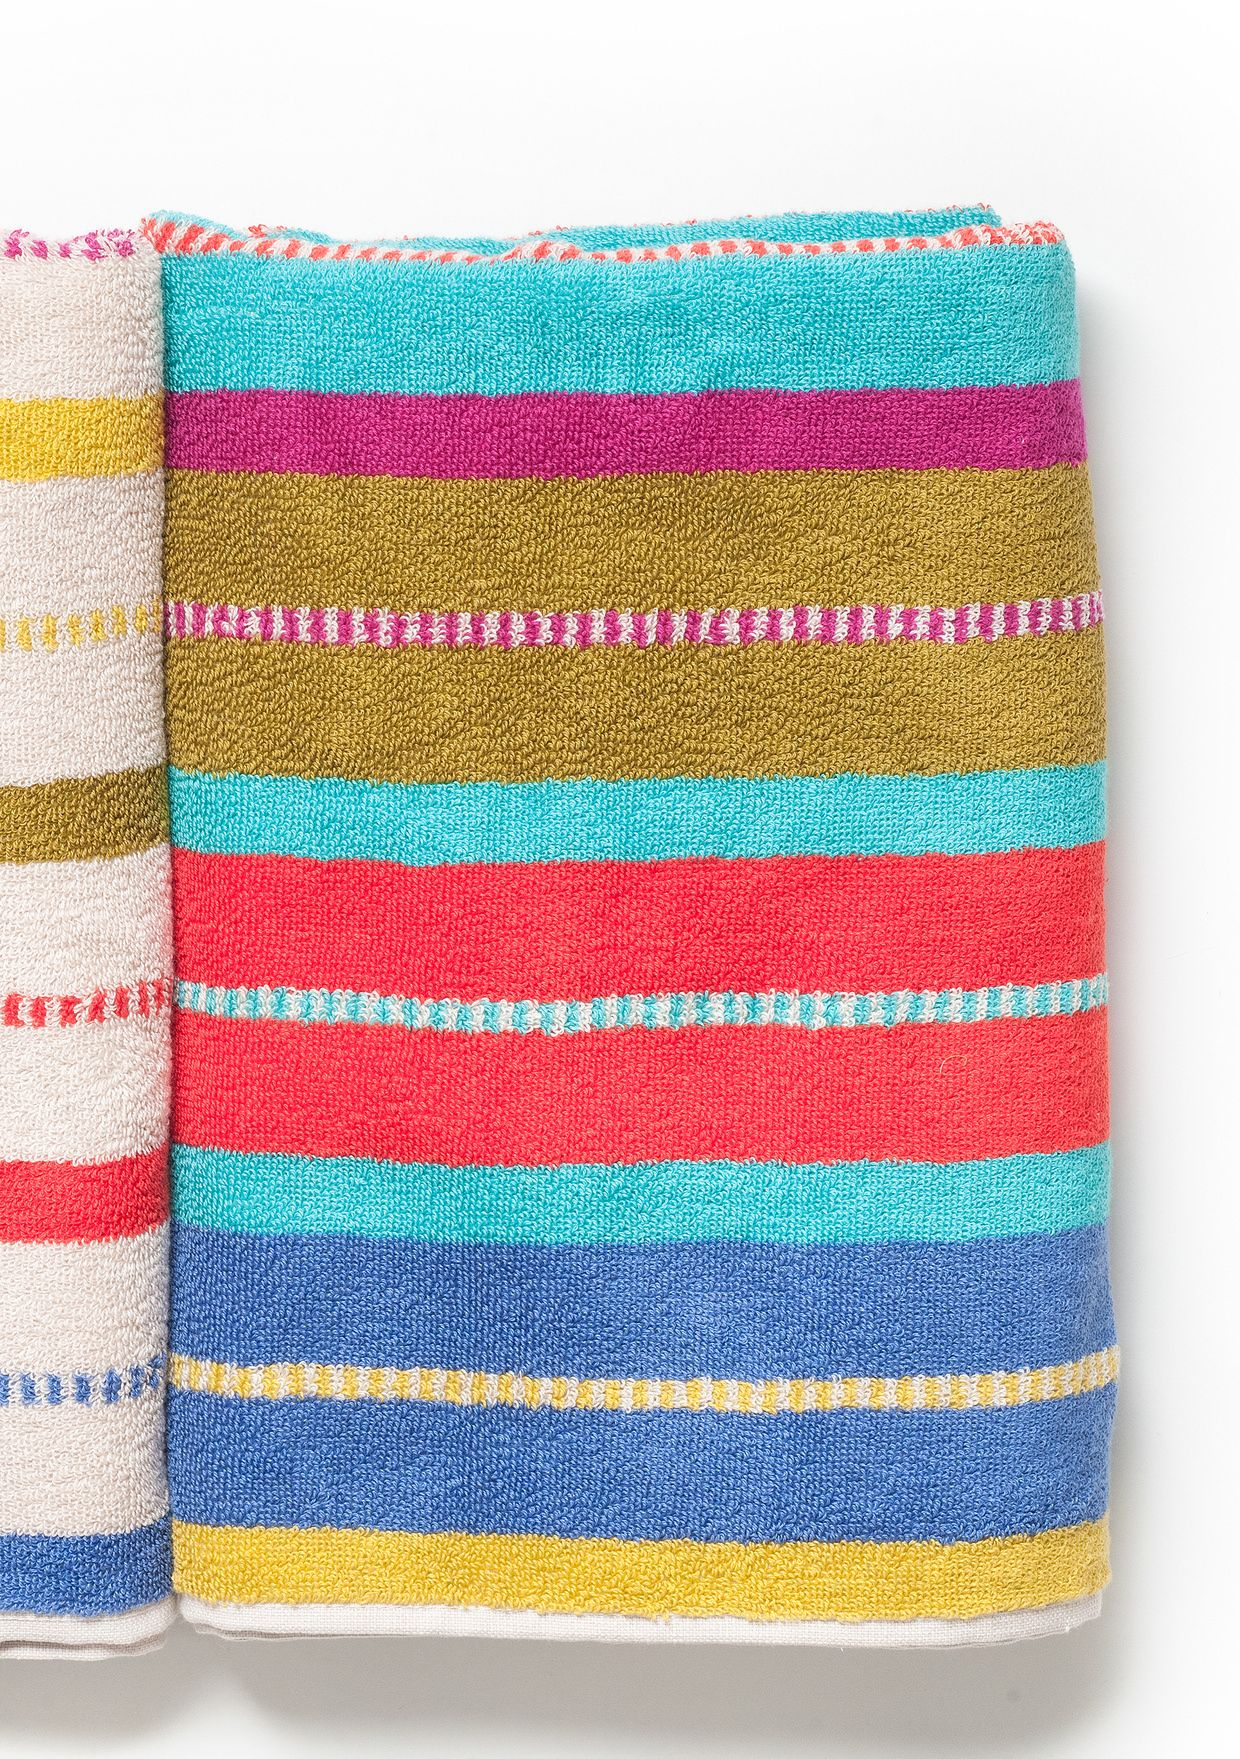 Our terry – GUDRUN SJÖDÉN – Webshop, mail order and boutiques | Colorful clothes and home textiles in natural materials.